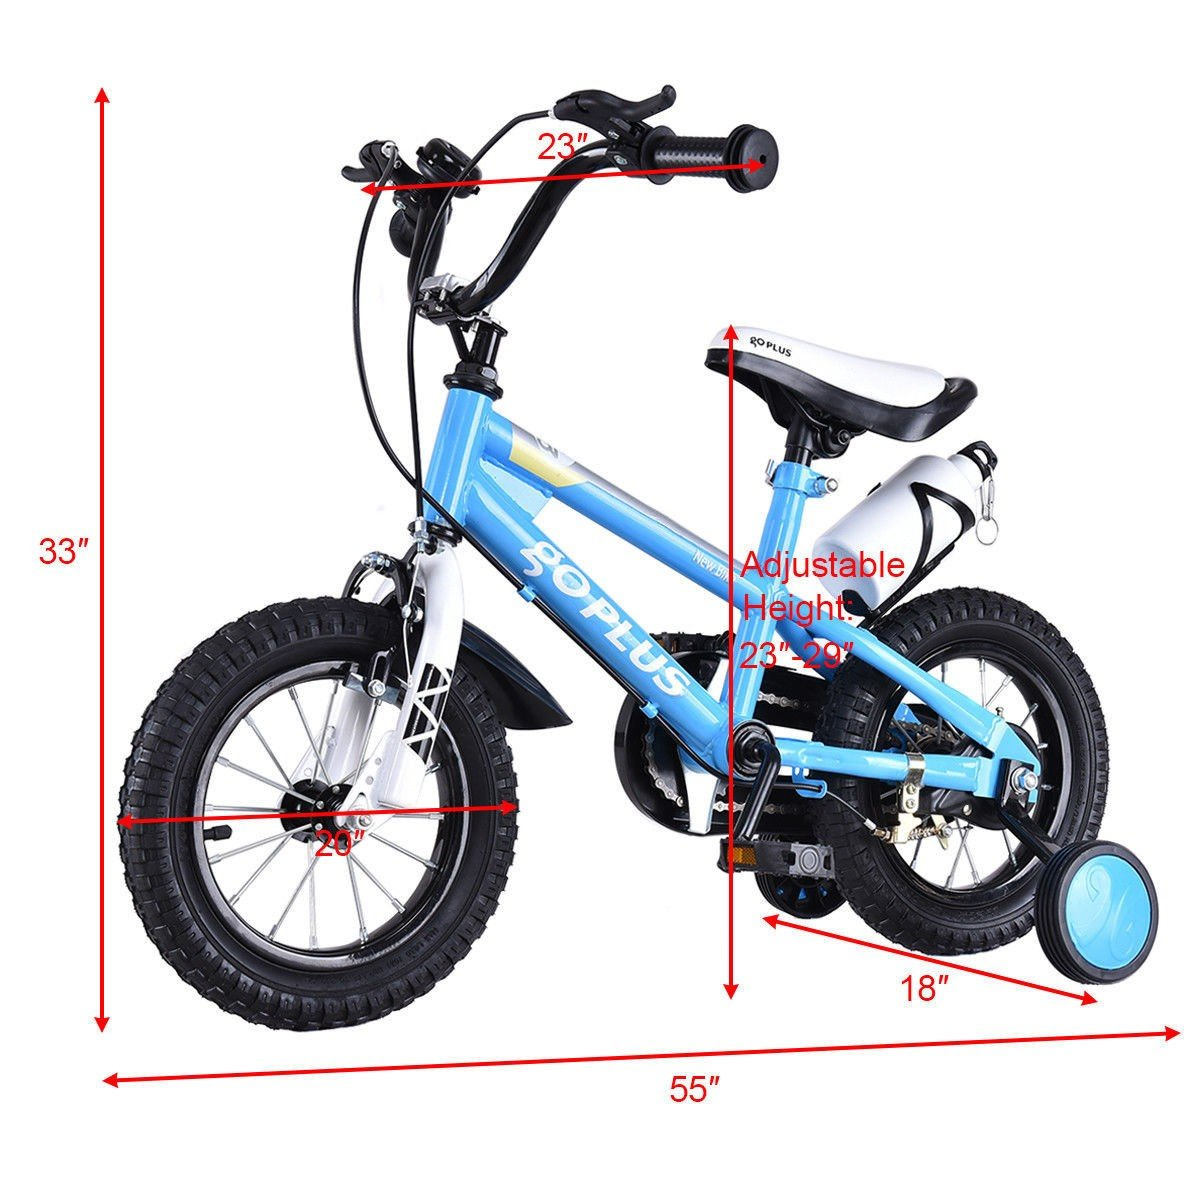 MD Group Kids Bicycle 20'' Adjustable Freestyle Boys & Girls Blue Metal w/ Training Wheels by MD Group (Image #4)